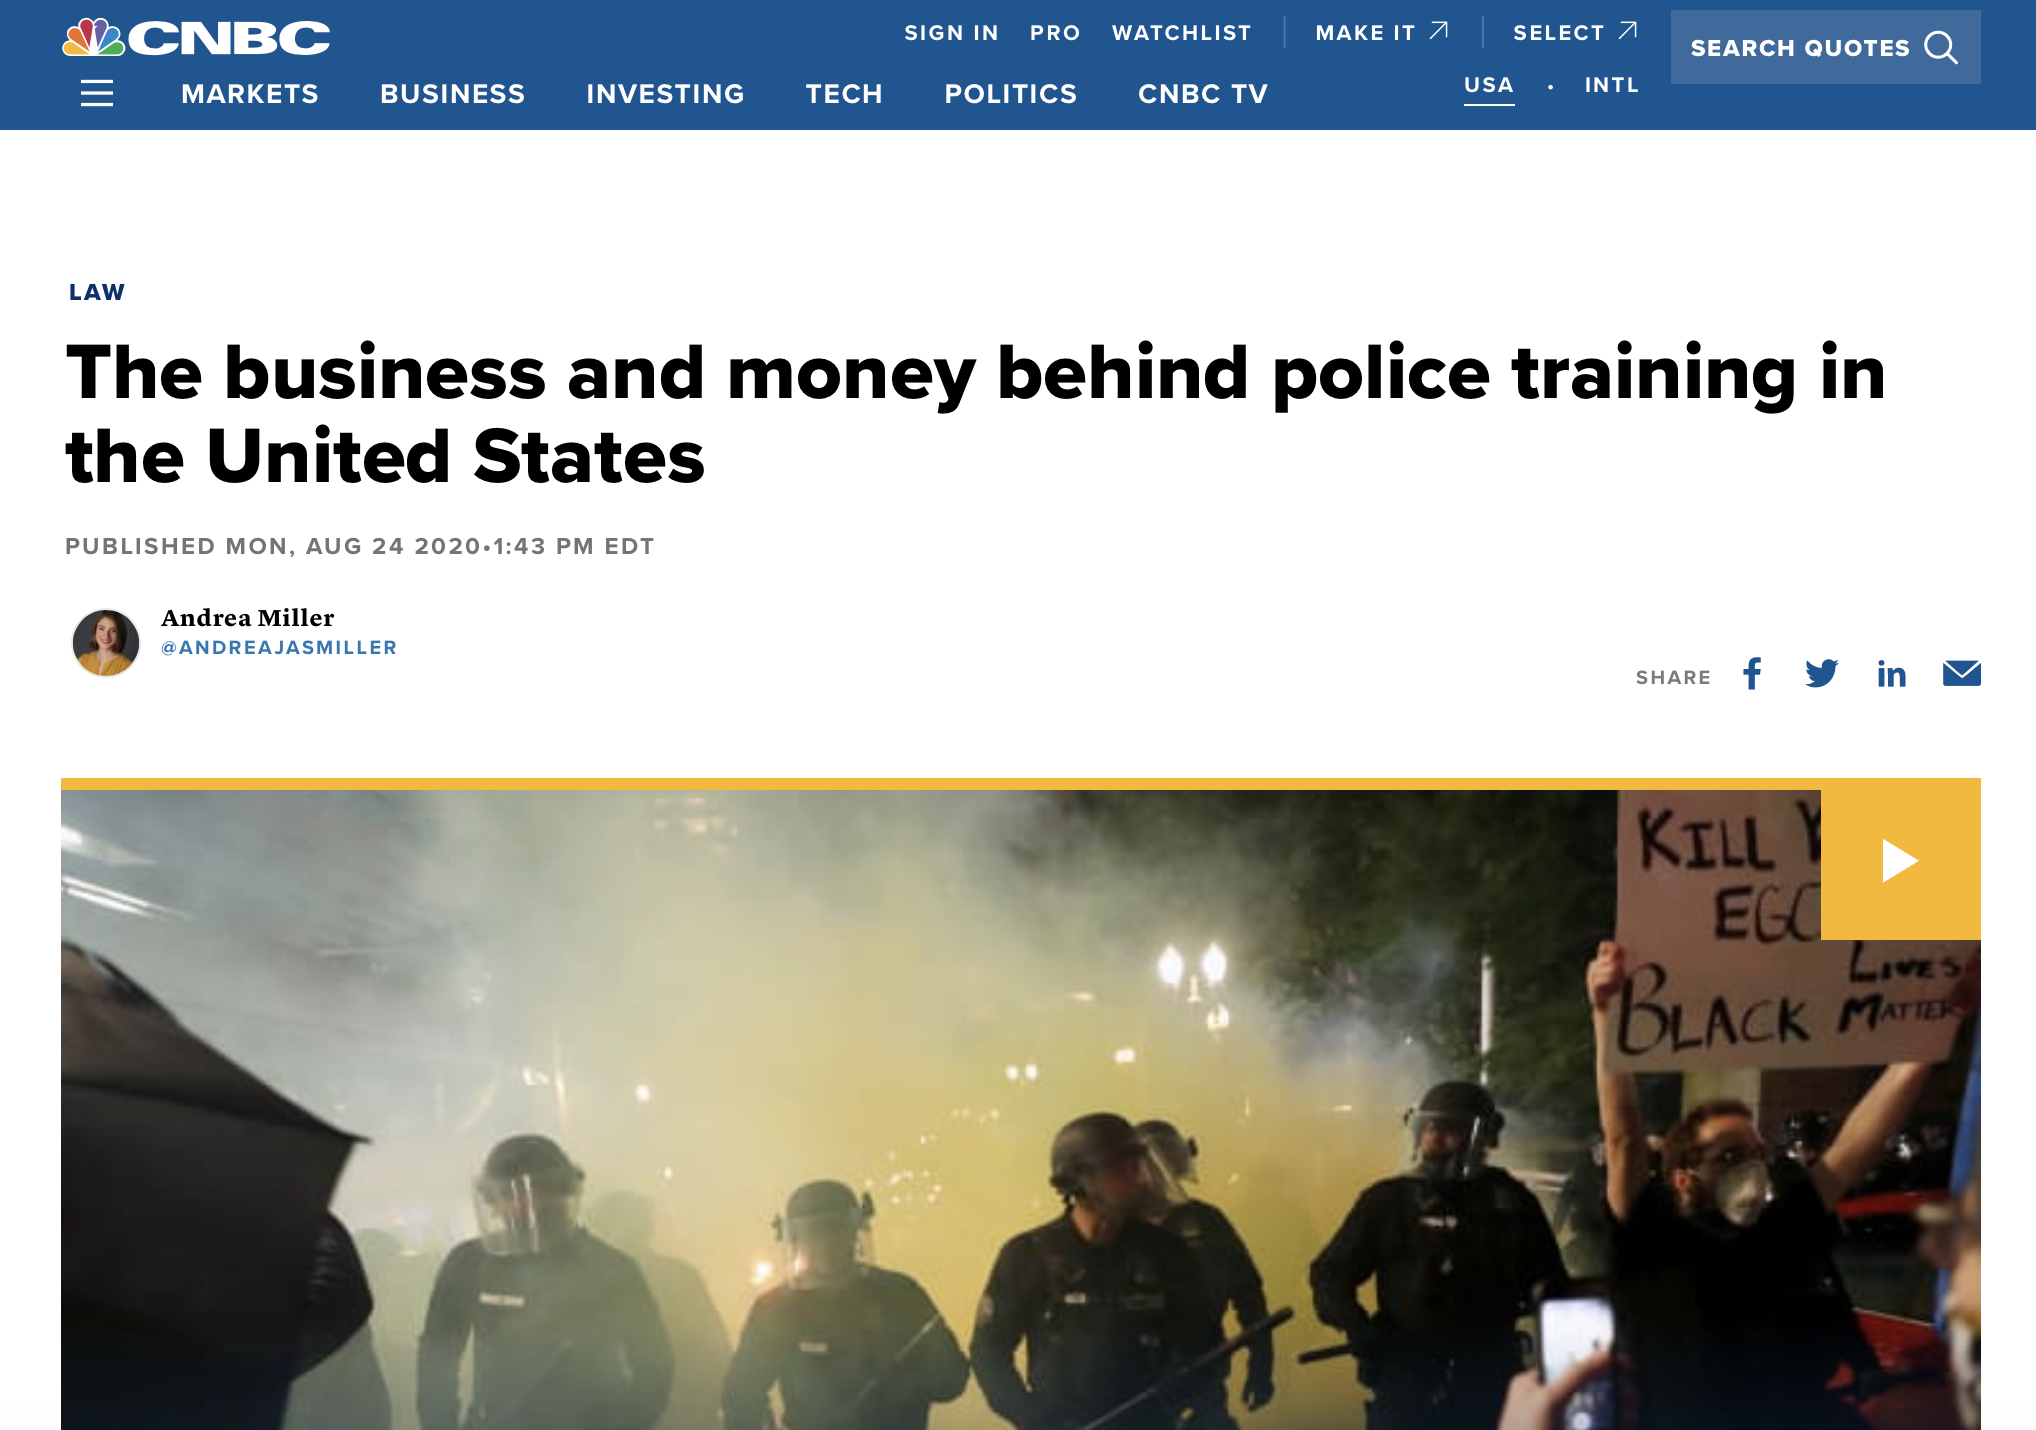 The business and money behind police training in the United States